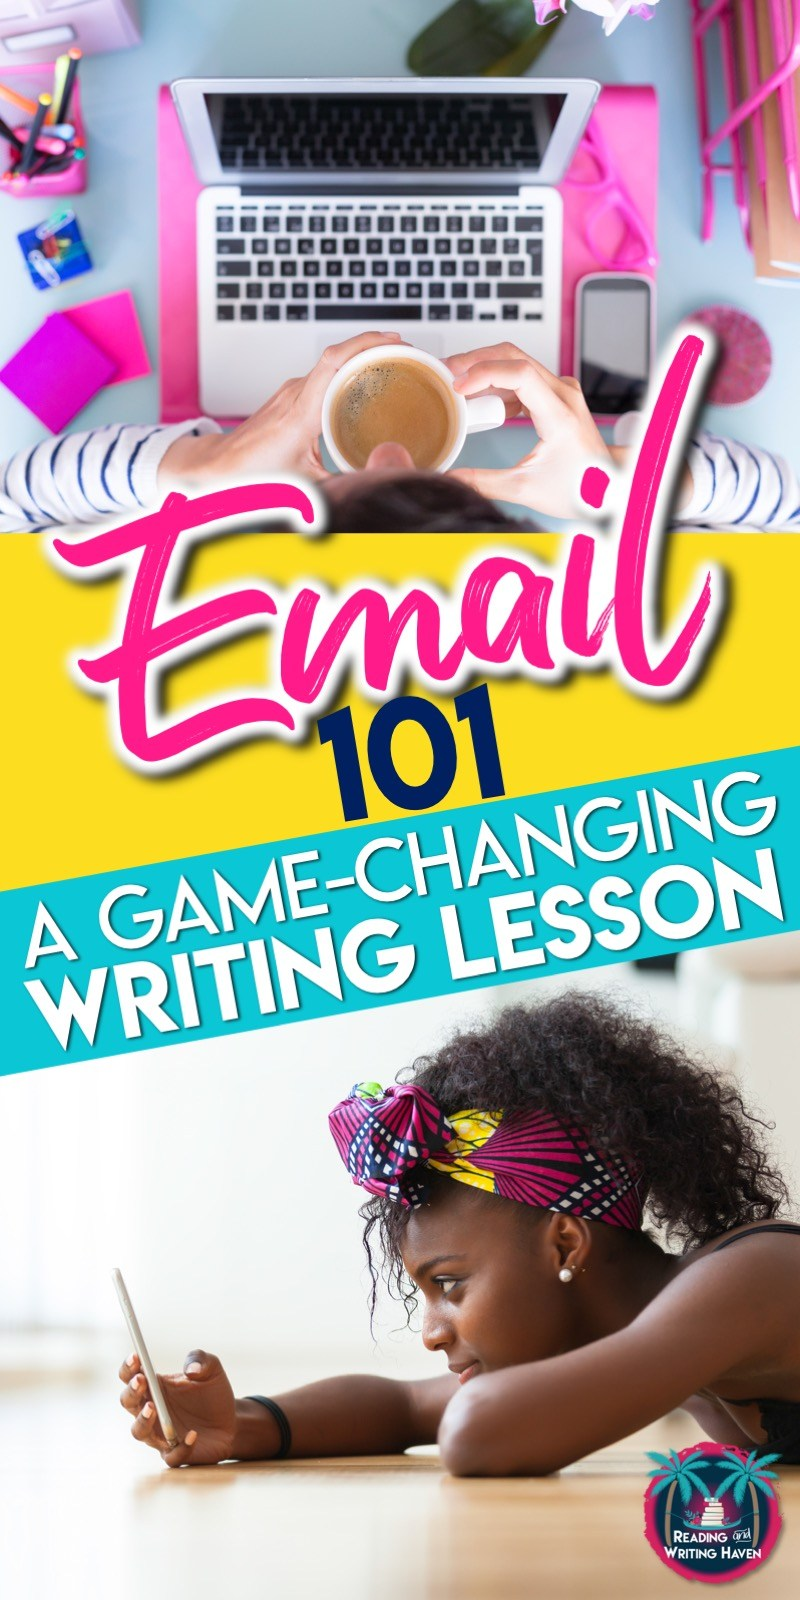 A relevant writing lesson for middle and high school ELA - how to teach email etiquette #EmailEtiquette #HighSchoolELA